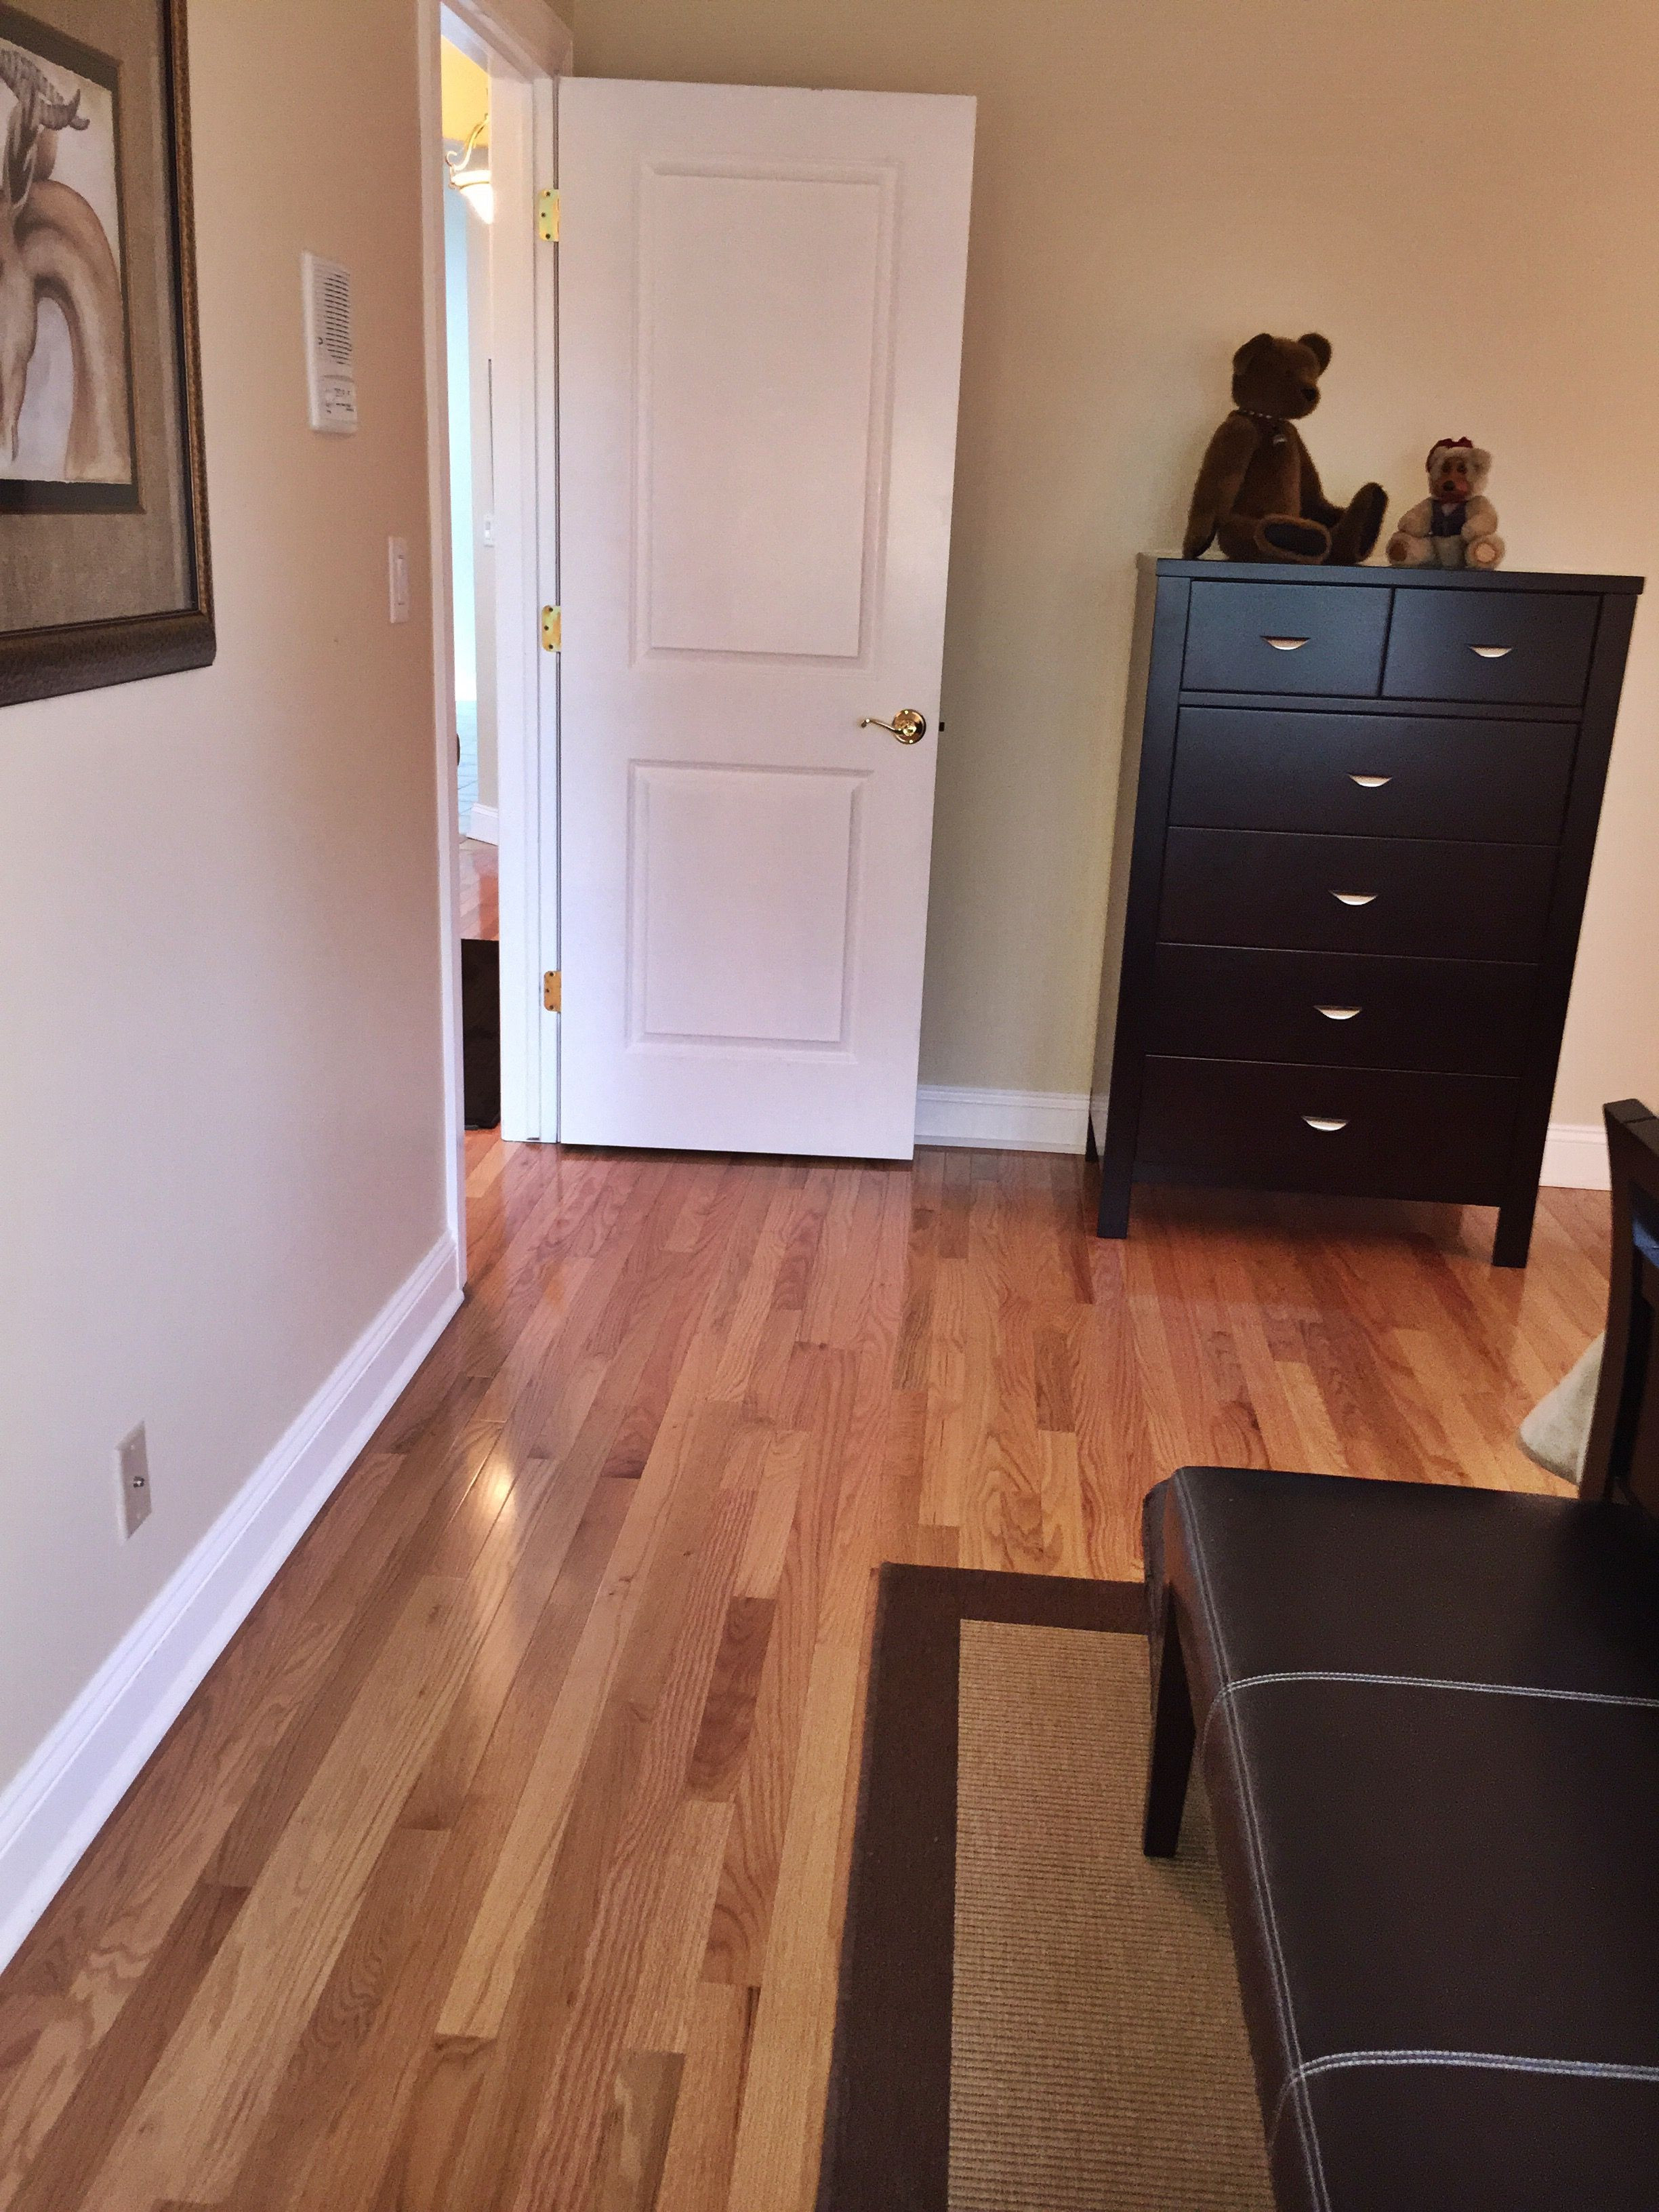 professional hardwood floor refinishing near me of hardwood floor refinishing chicago hardwood flooring somerset high in hardwood floor refinishing chicago hardwood flooring somerset high gloss 2 1 4 width natural red